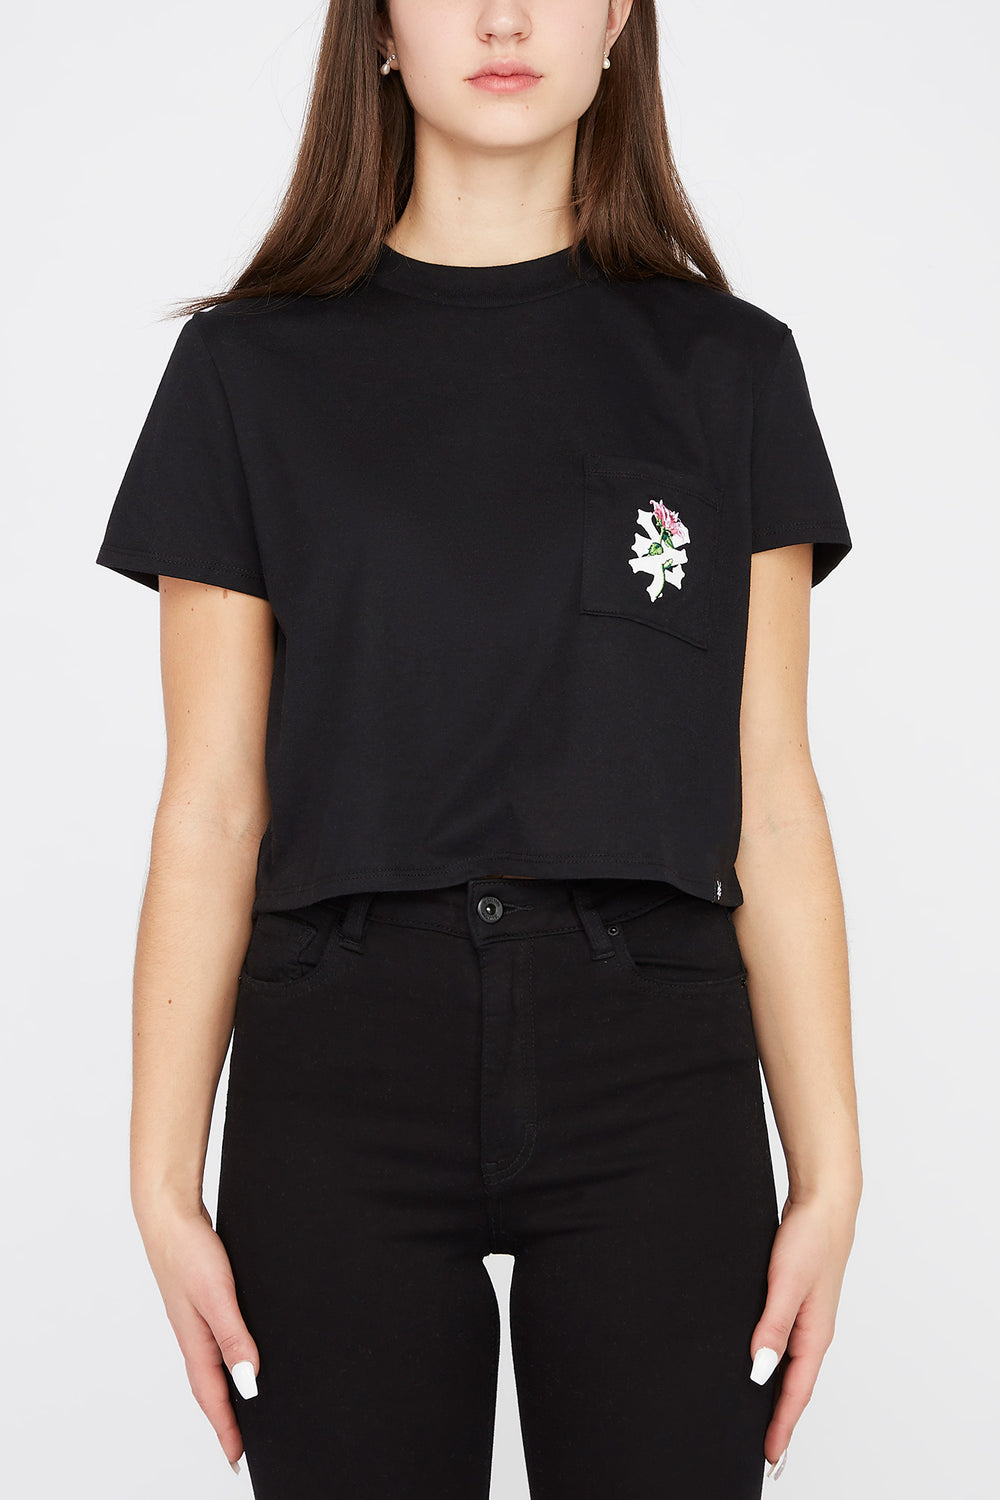 Zoo York Womens Rose Logo Pocket Cropped T-Shirt Black